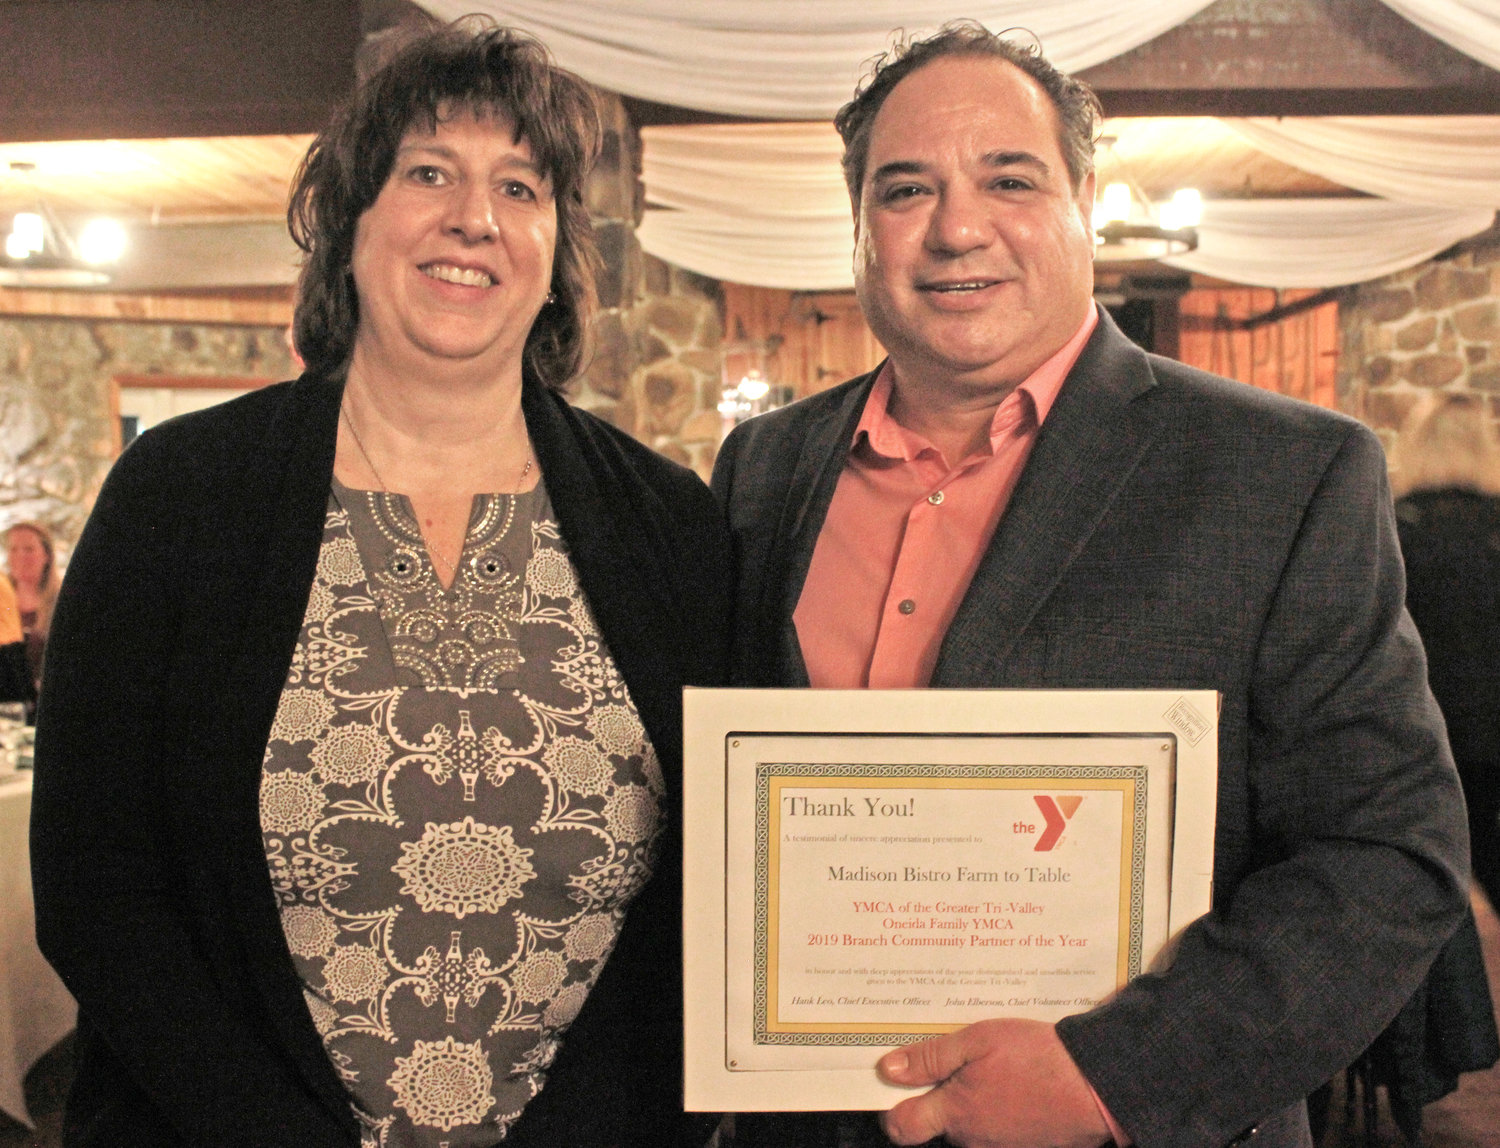 ONEIDA PARTNER — Madison Bistro was warded the Oneida Community Partner of the Year at the annual YMCA 2020 Recognition Program on Wednesday.